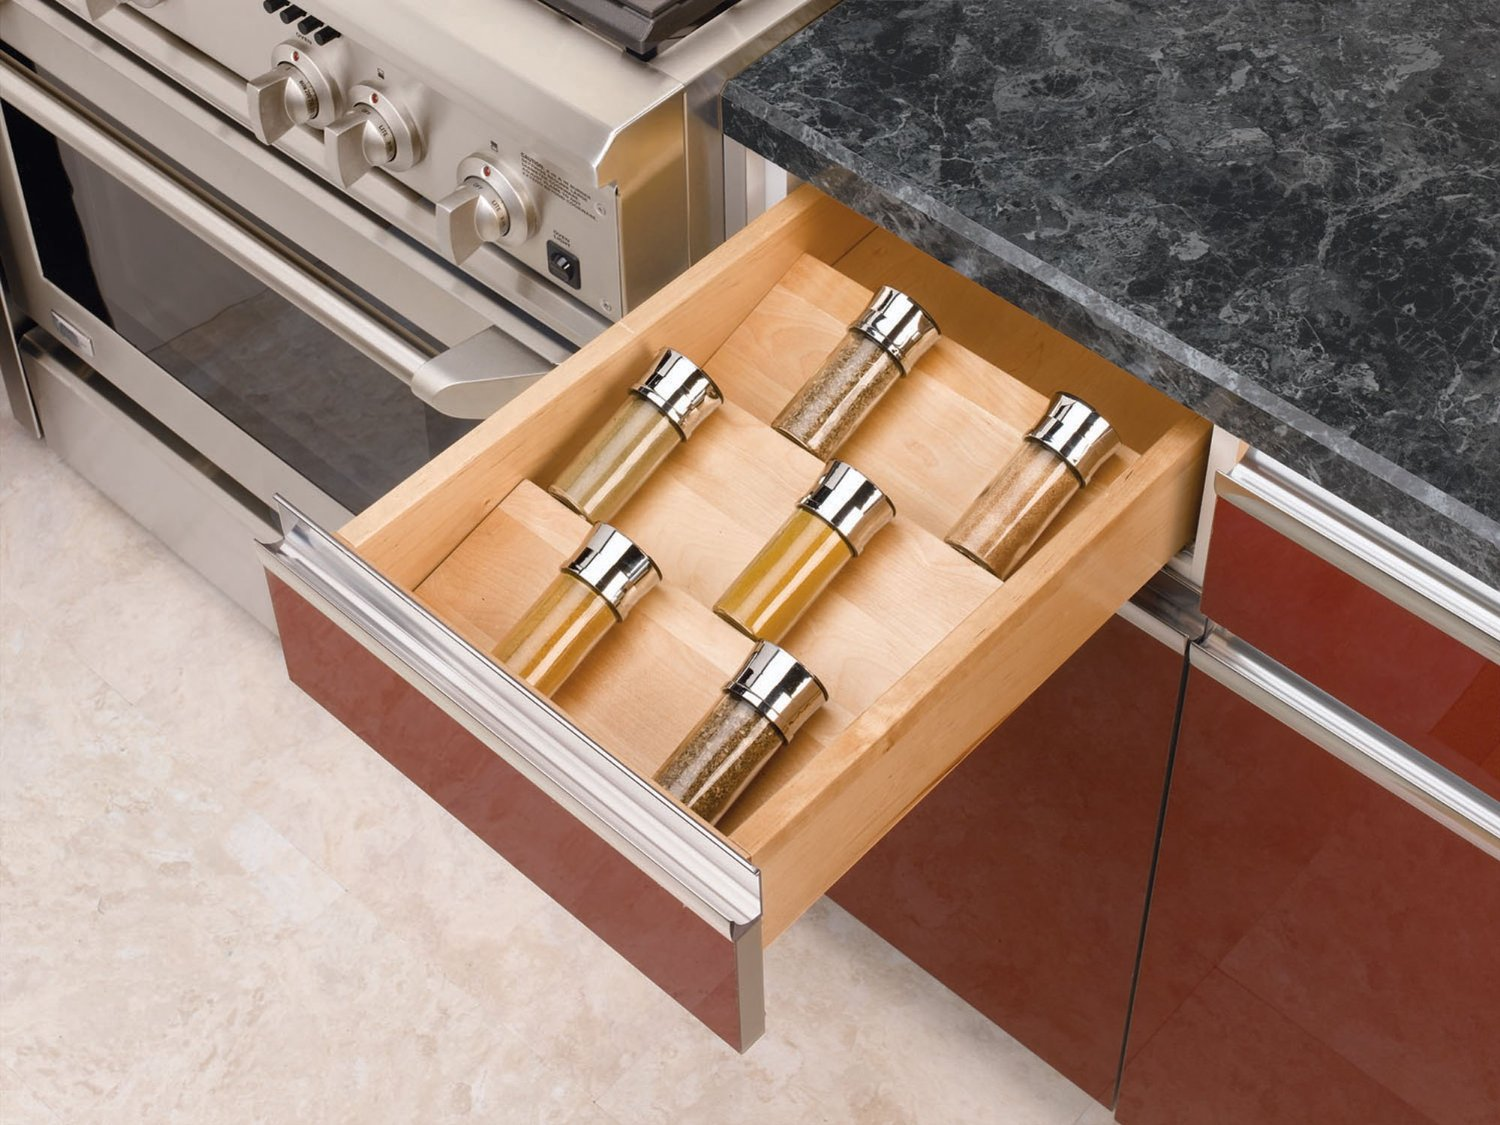 Small Countertop Spice Rack : ... for wooden cabinet in kitchen with small simple in drawers spice racks